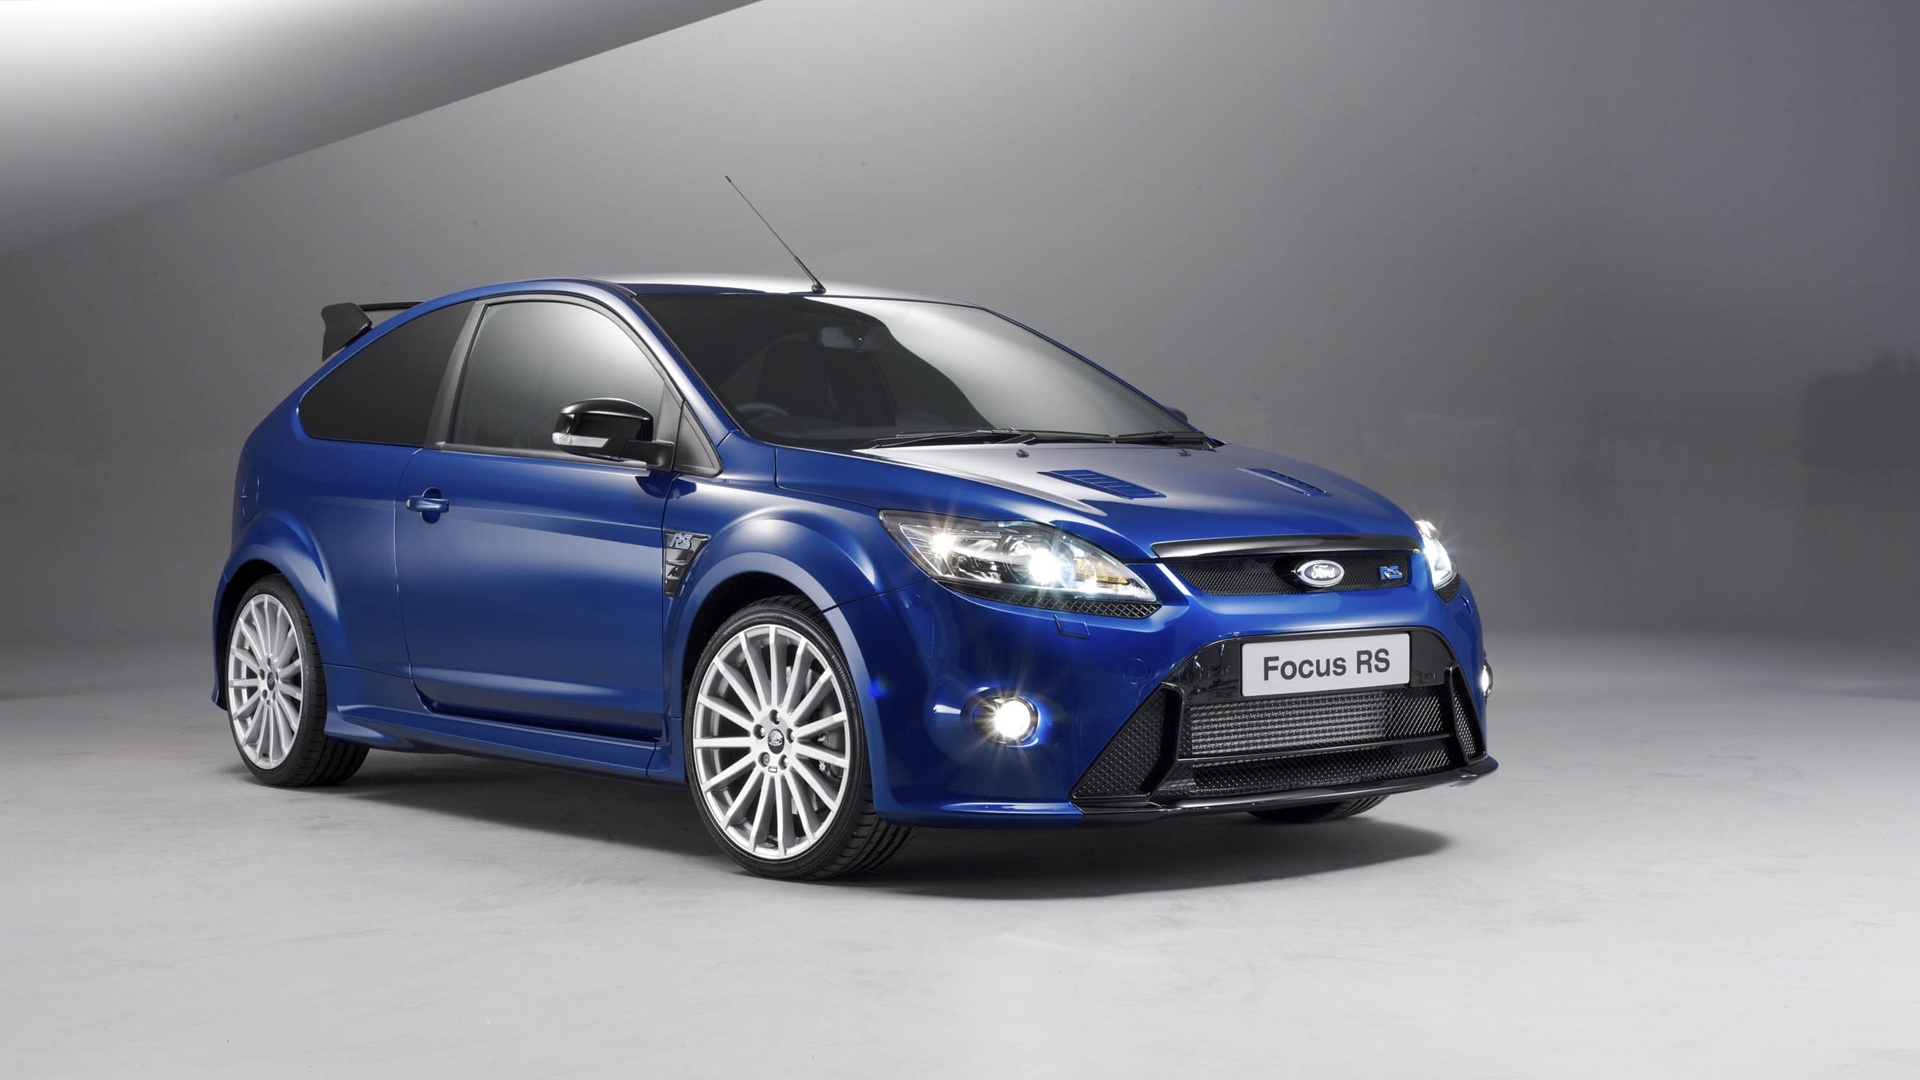 Ford Focus RS 2009   High Definition Wallpapers   HD wallpapers 1920x1080